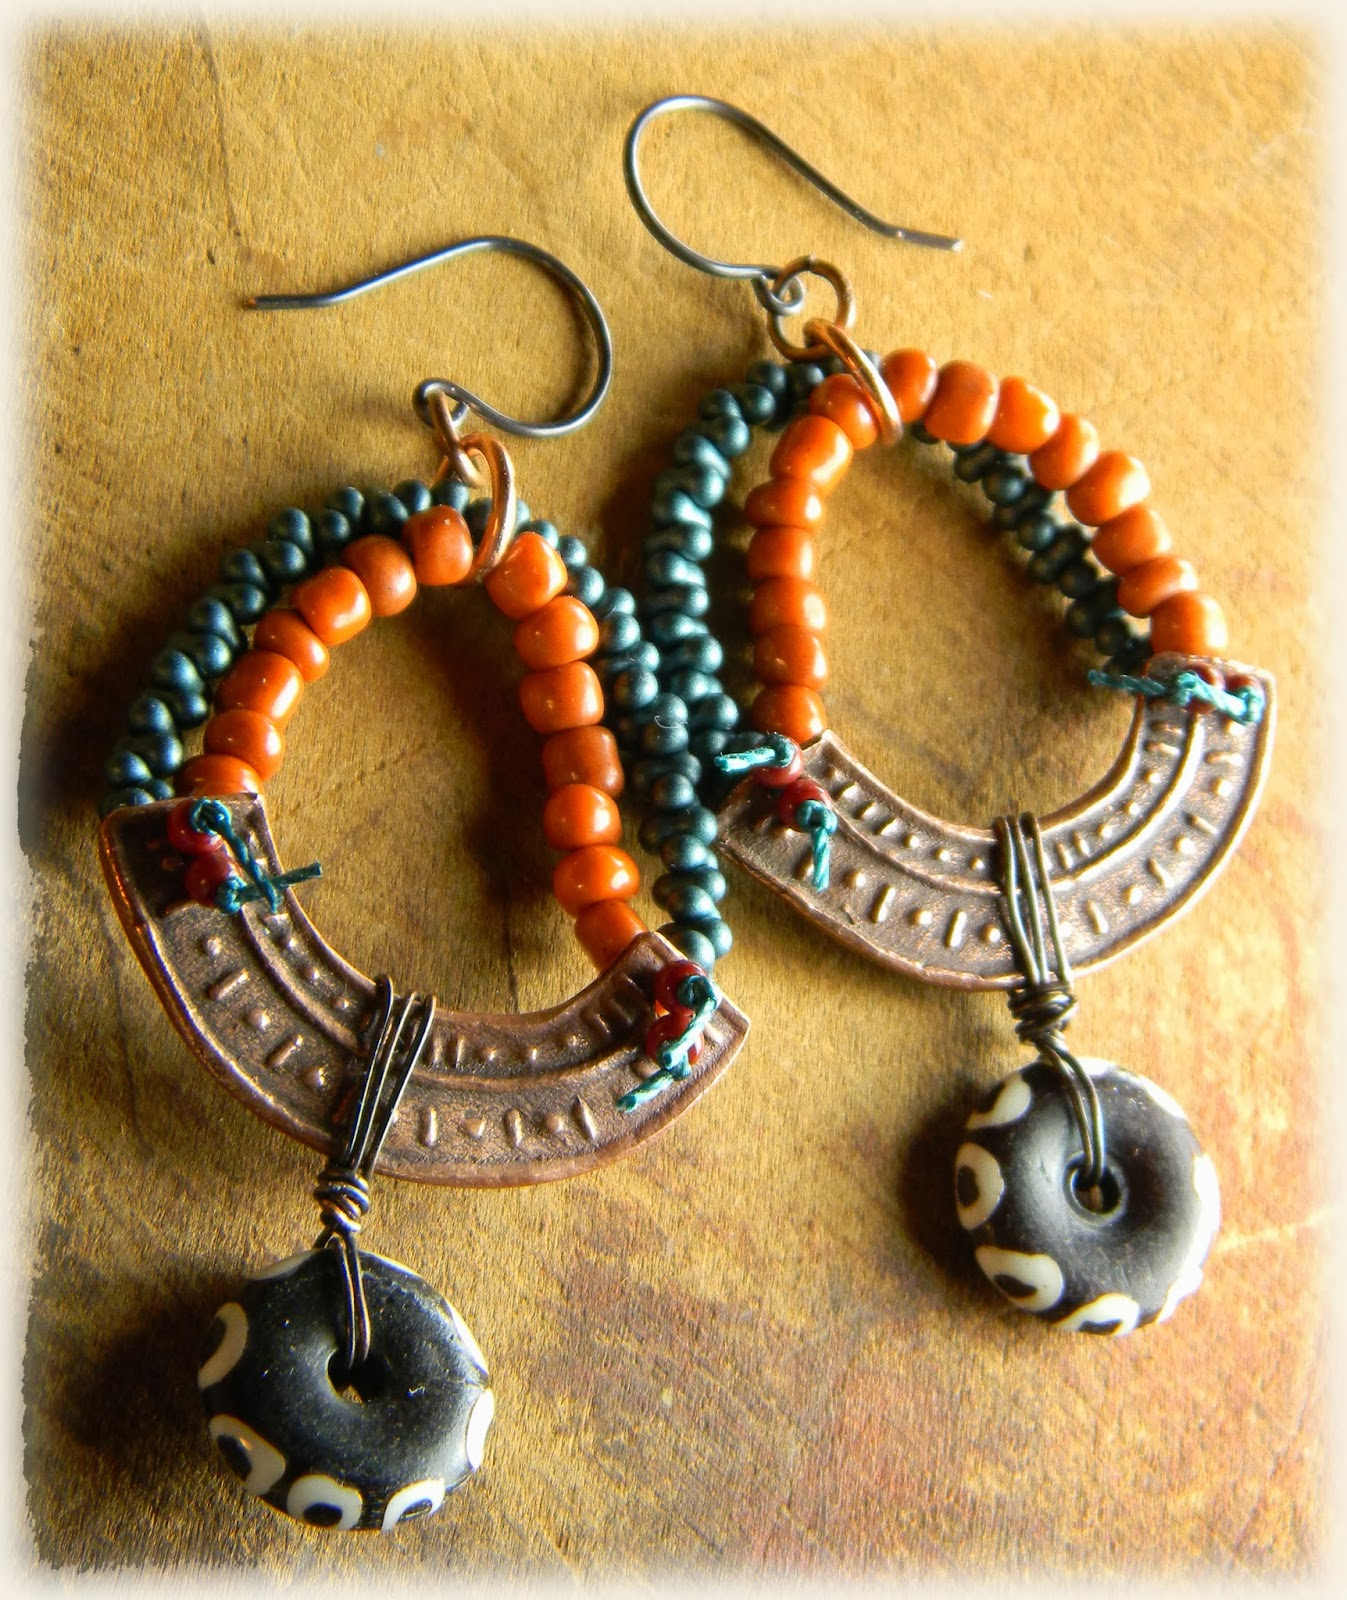 Earrings Everyday: Cross Culture Arches